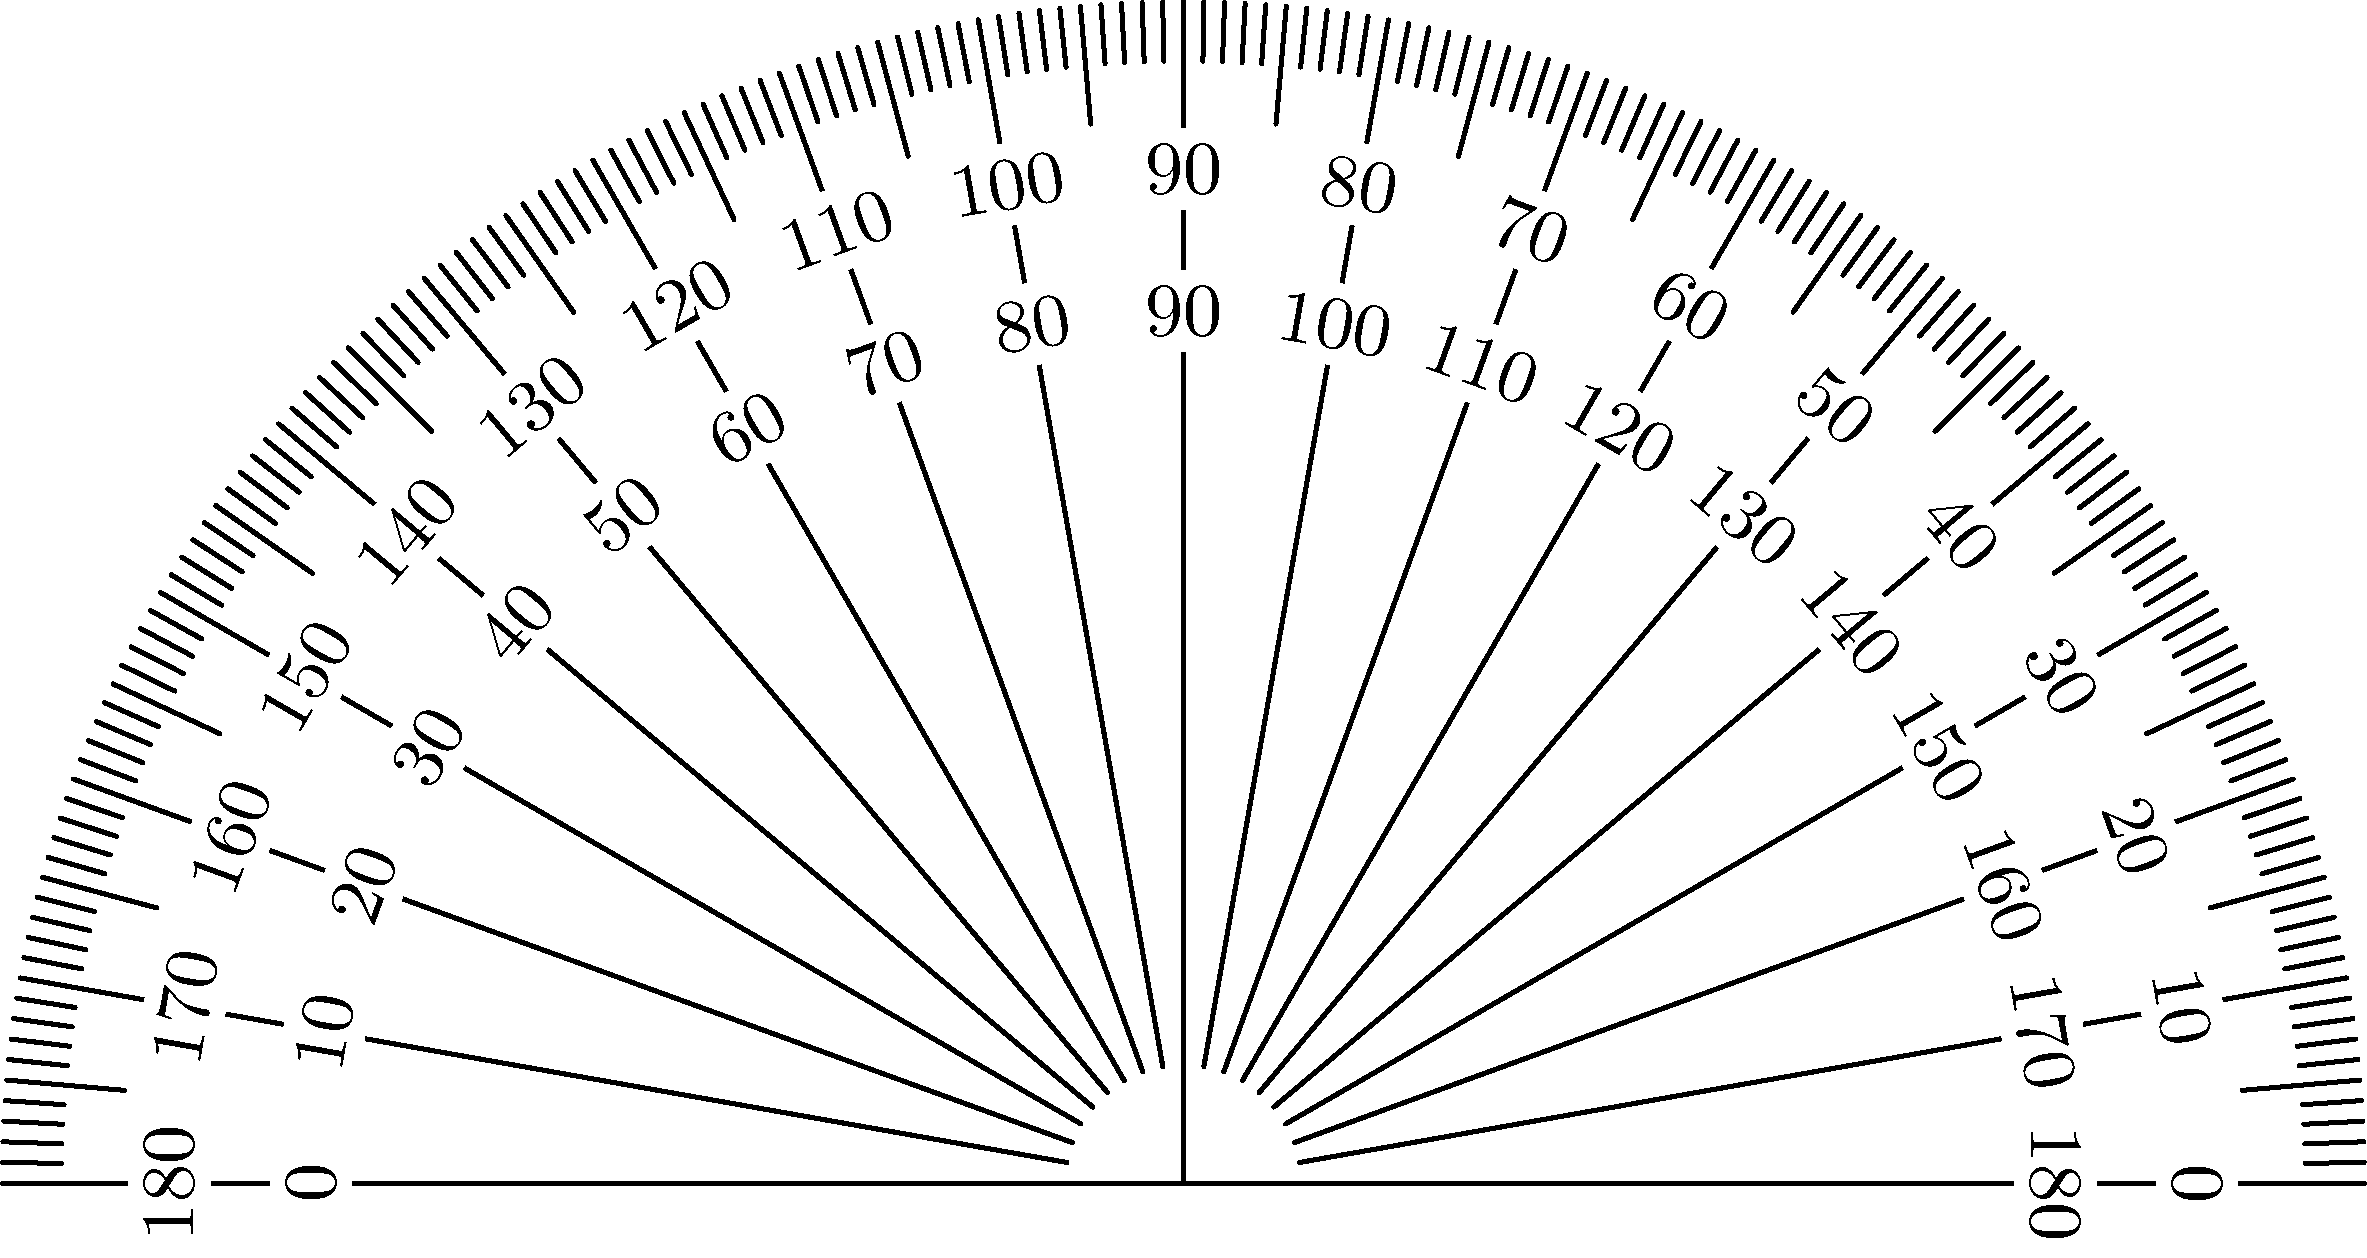 Astounding image with printable protractor